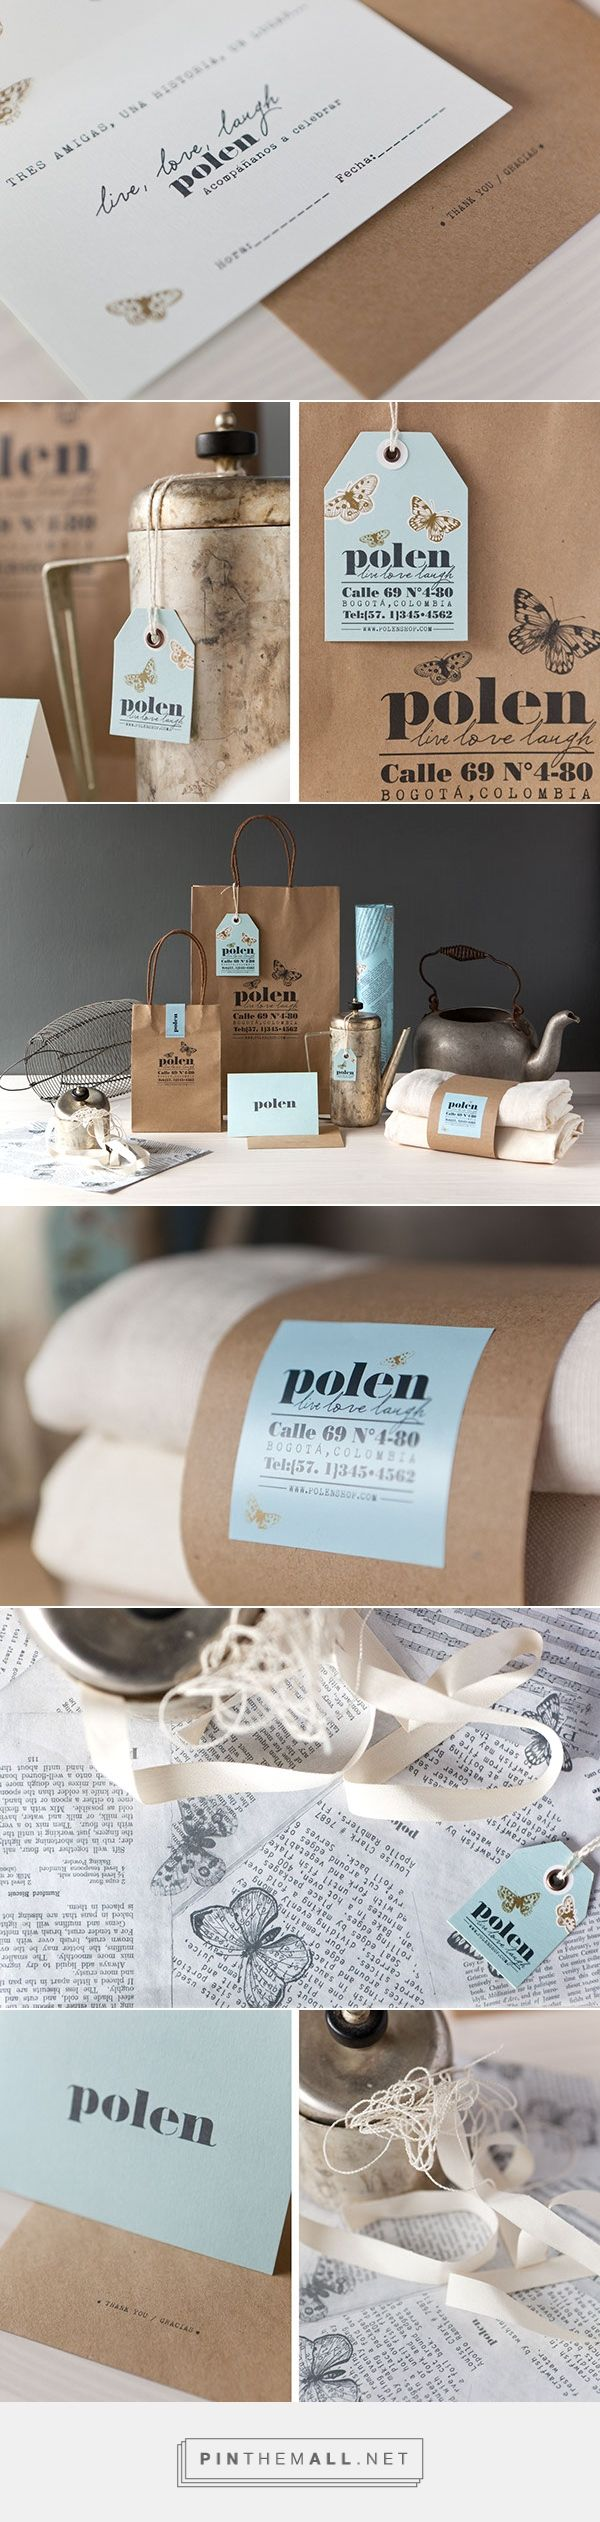 Polen Branding and Packaging by Wallnut Studio on Behance | Fivestar Branding – Design and Branding Agency & Inspiration Gallery